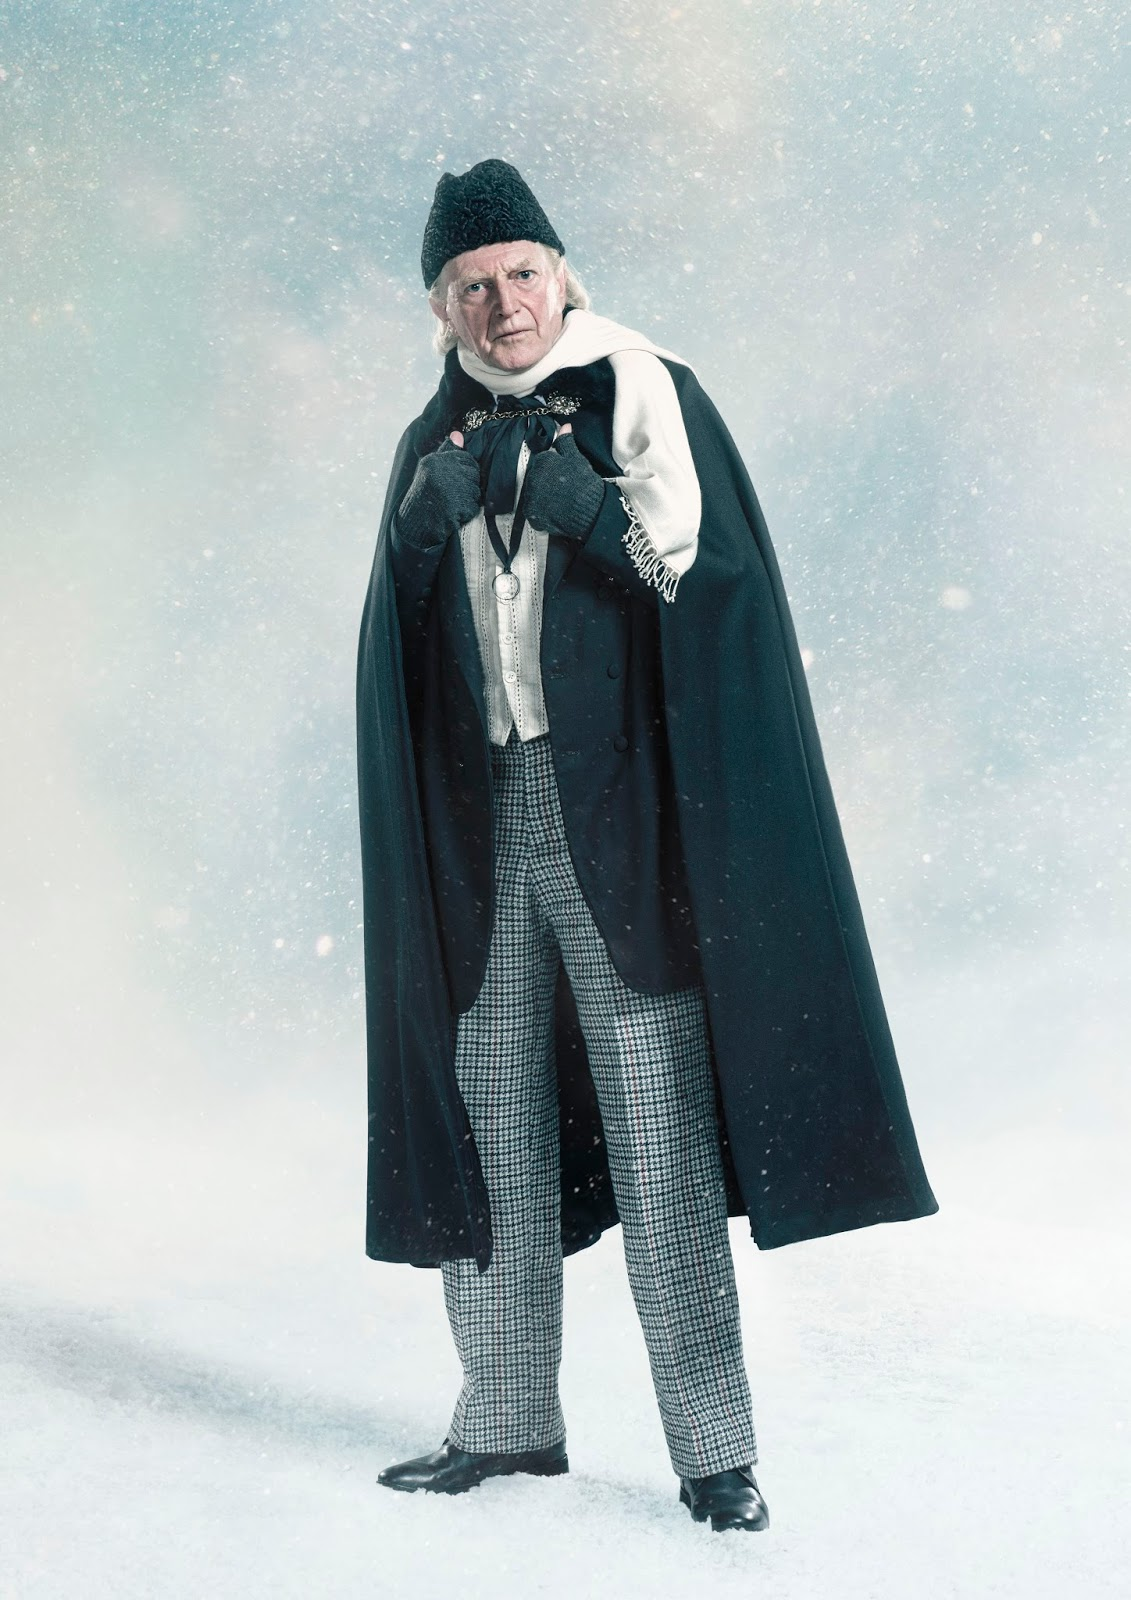 David Bradley on playing the First Doctor and imitating William Hartnell  sc 1 st  Whoogle & WHOOGLE: David Bradley on playing the First Doctor and imitating ...